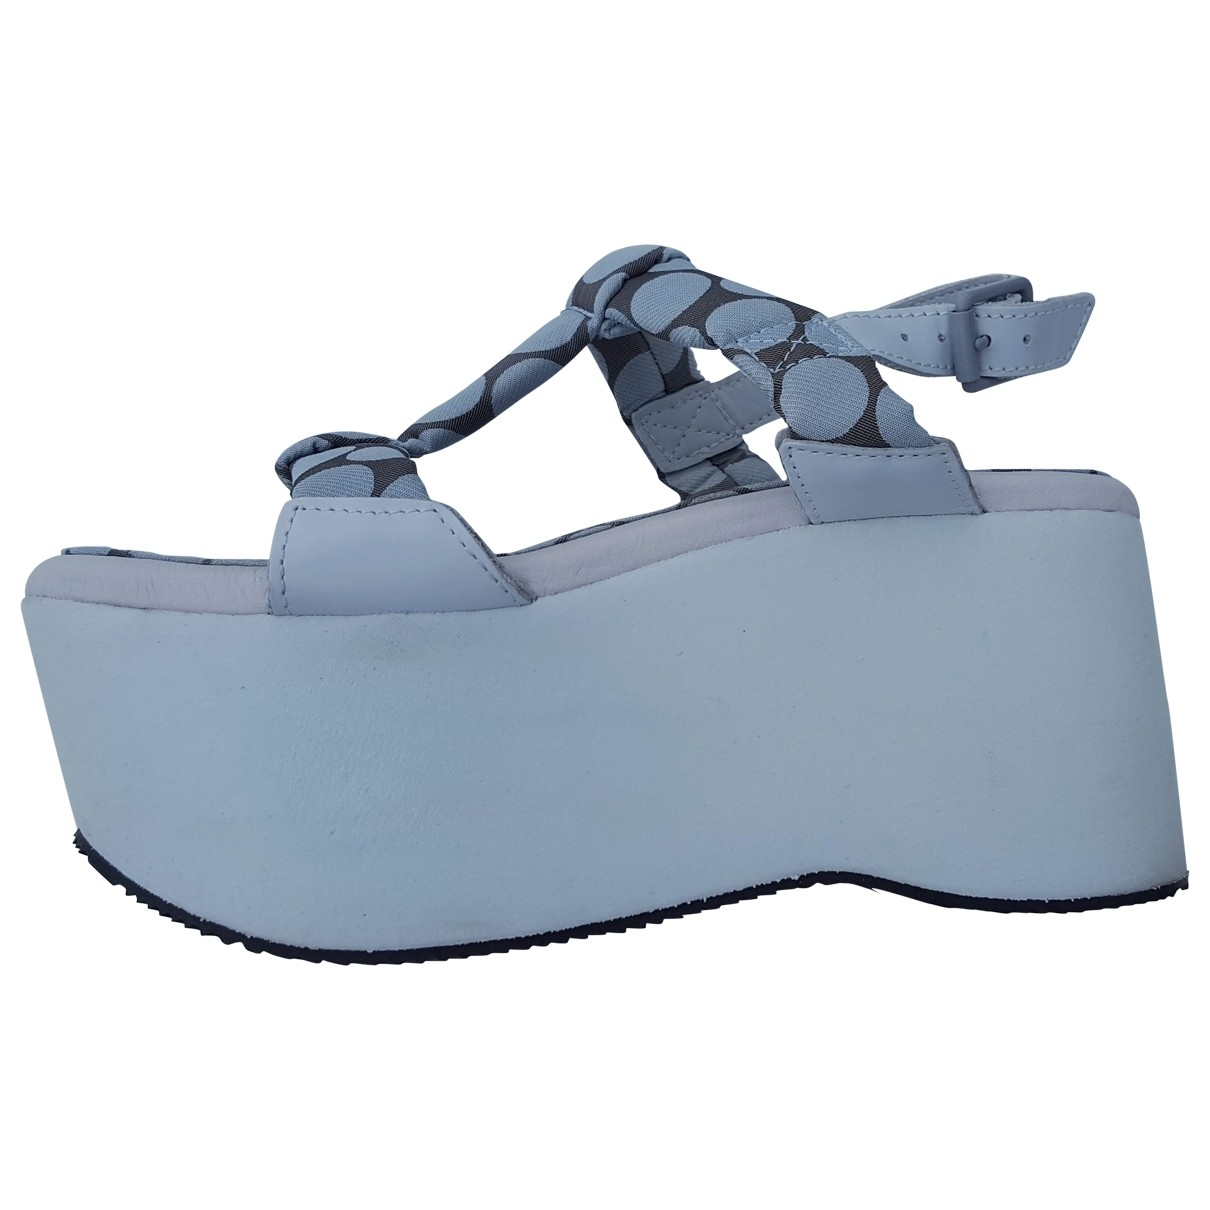 Adidas X Opening Ceremony \N Sandalen in  Weiss Polyester